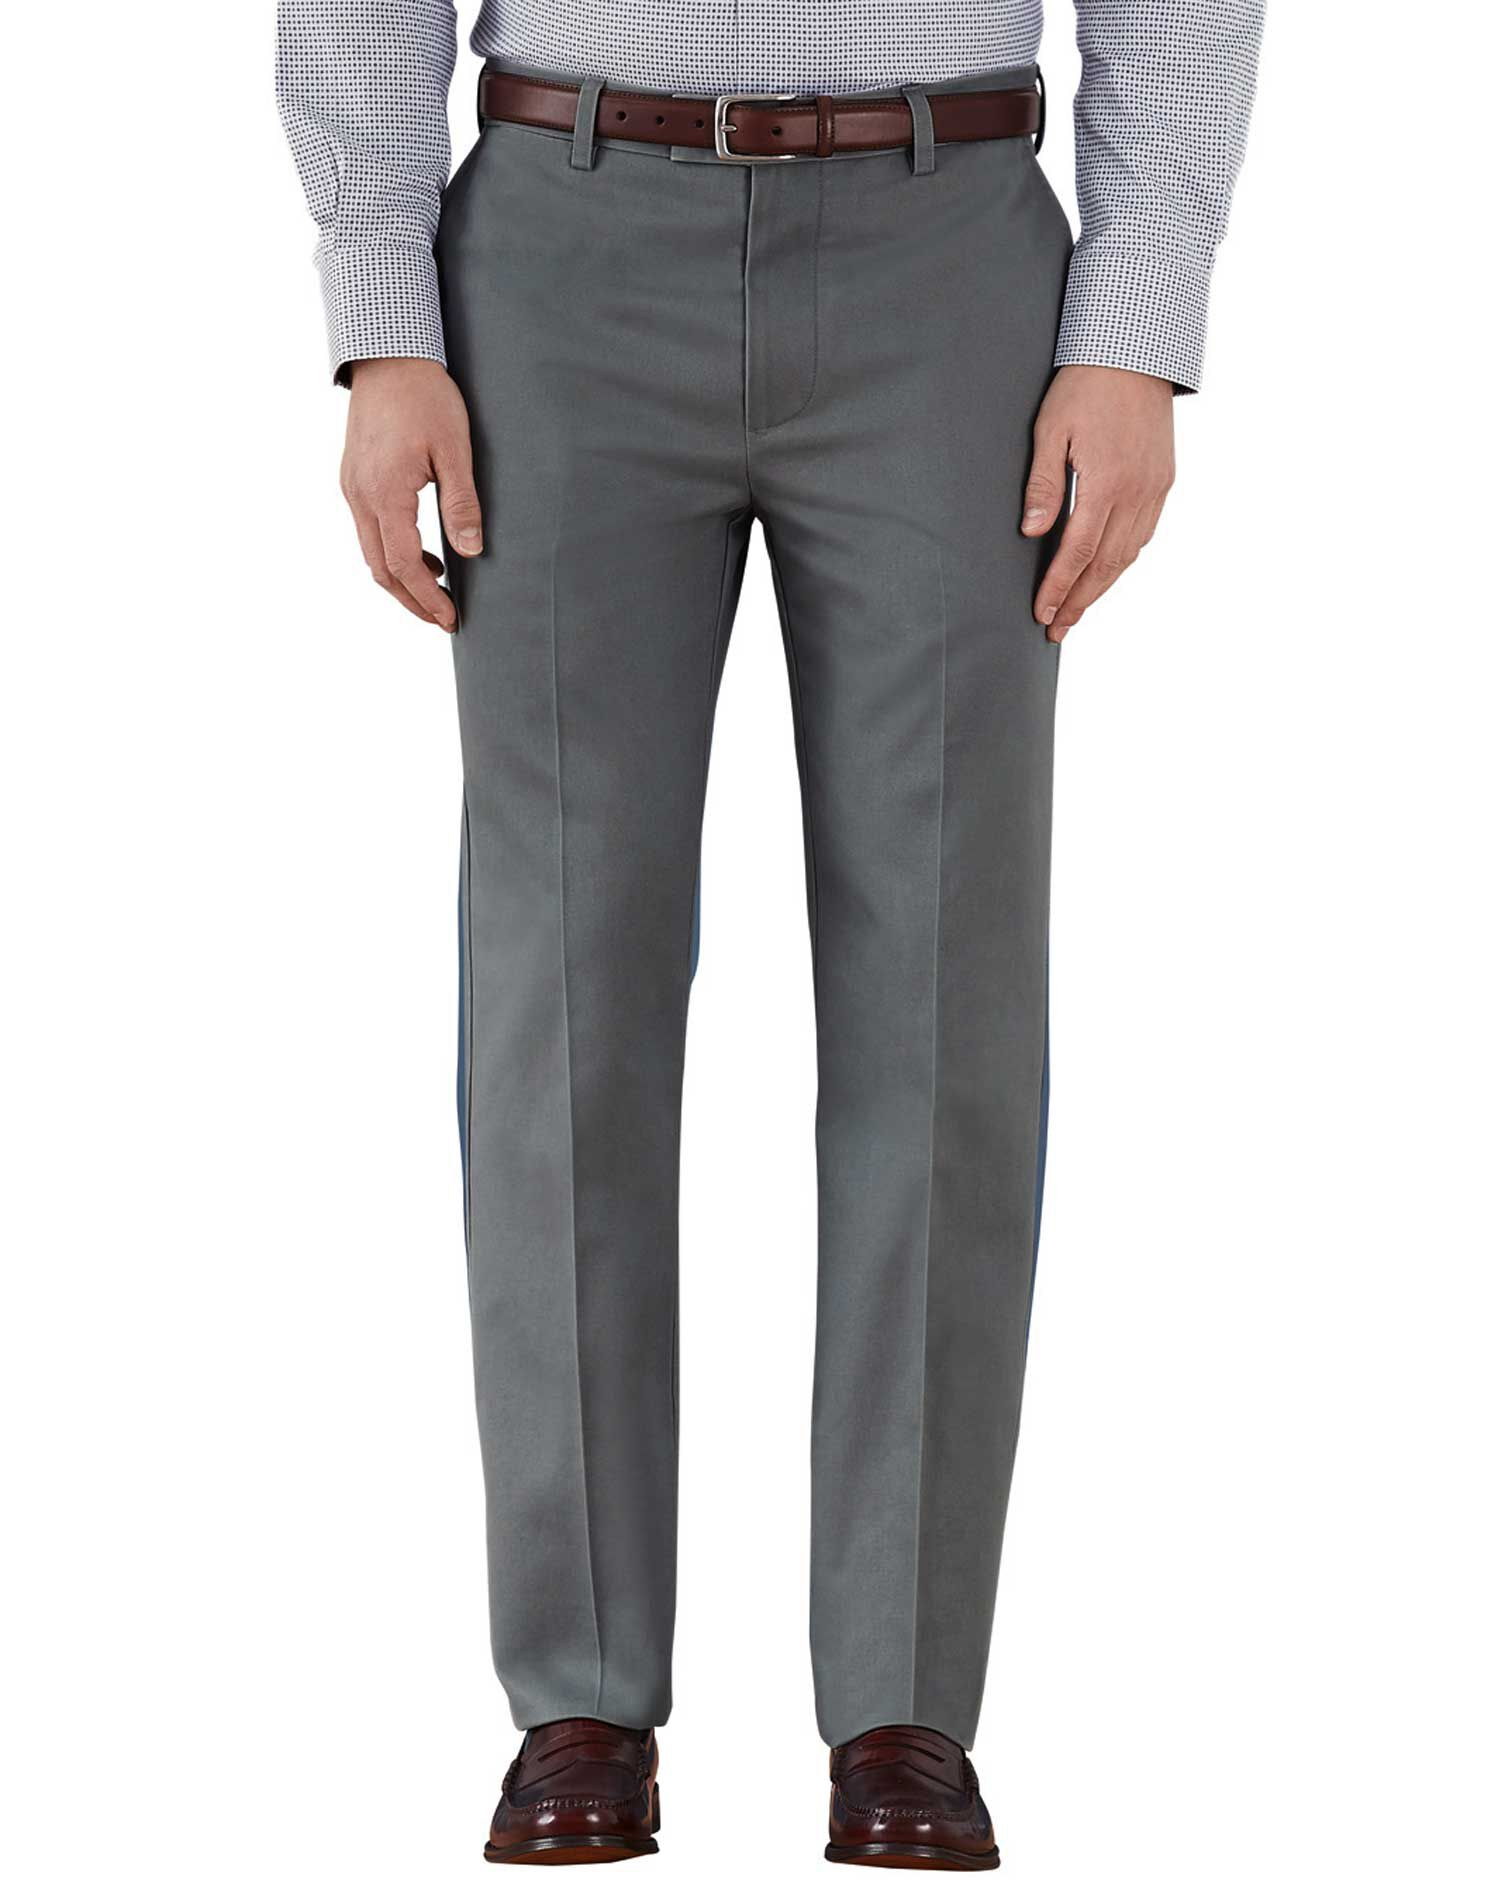 Grey Slim Fit Flat Front Non-Iron Cotton Chino Trousers Size W34 L32 by Charles Tyrwhitt